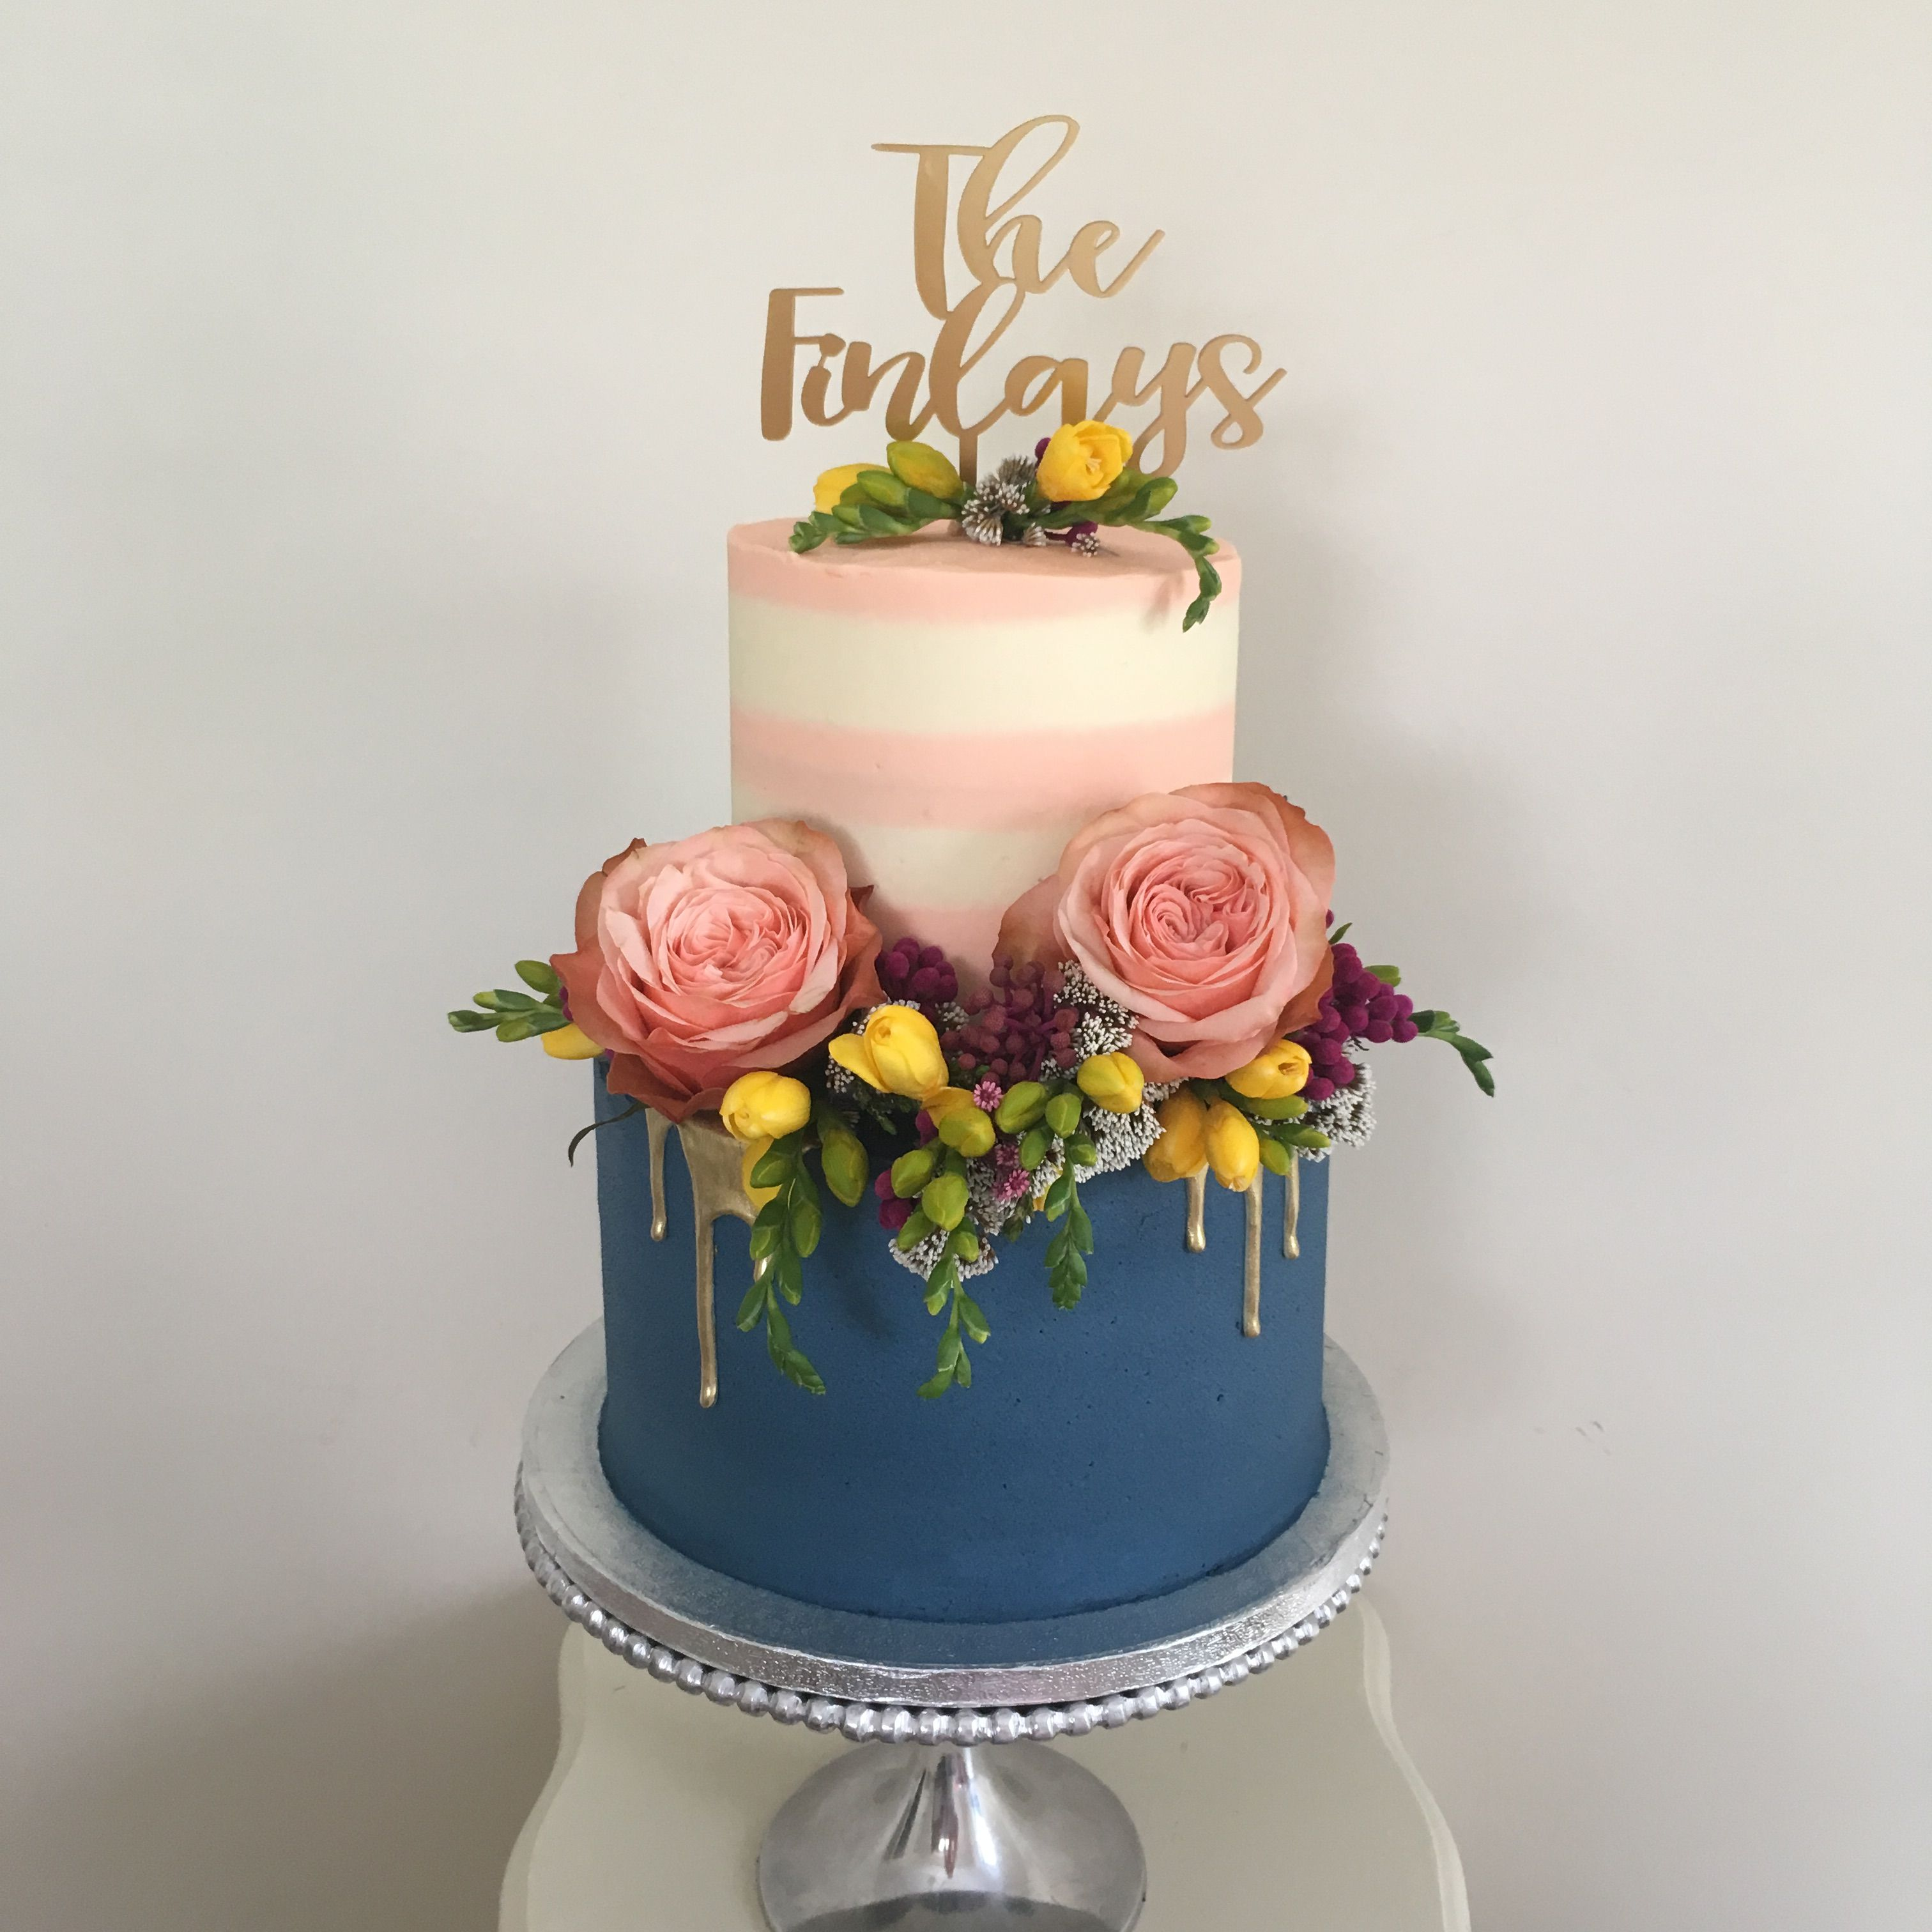 Boho Wedding Cake Bohemian Style Gold And Floral Wedding Cake With Navy Blue Tier Topped With C Wedding Shower